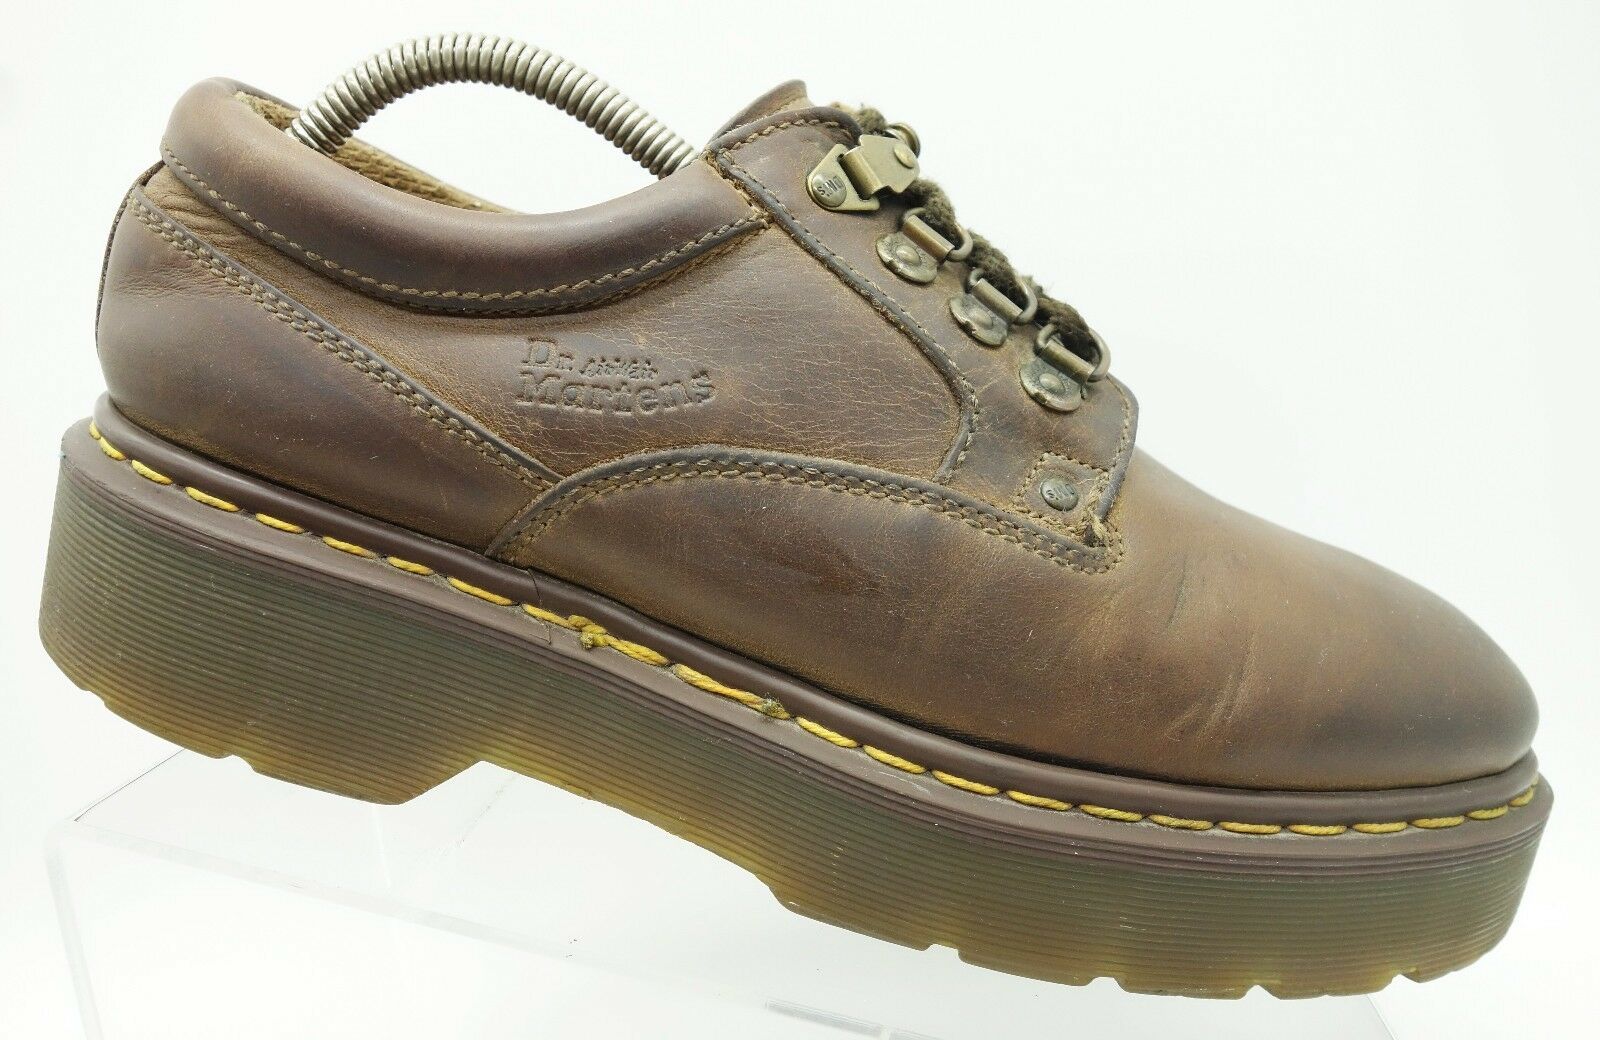 Dr. Martens England Brown Leather Oxfords Casual Women's shoes 9 UK   11 US